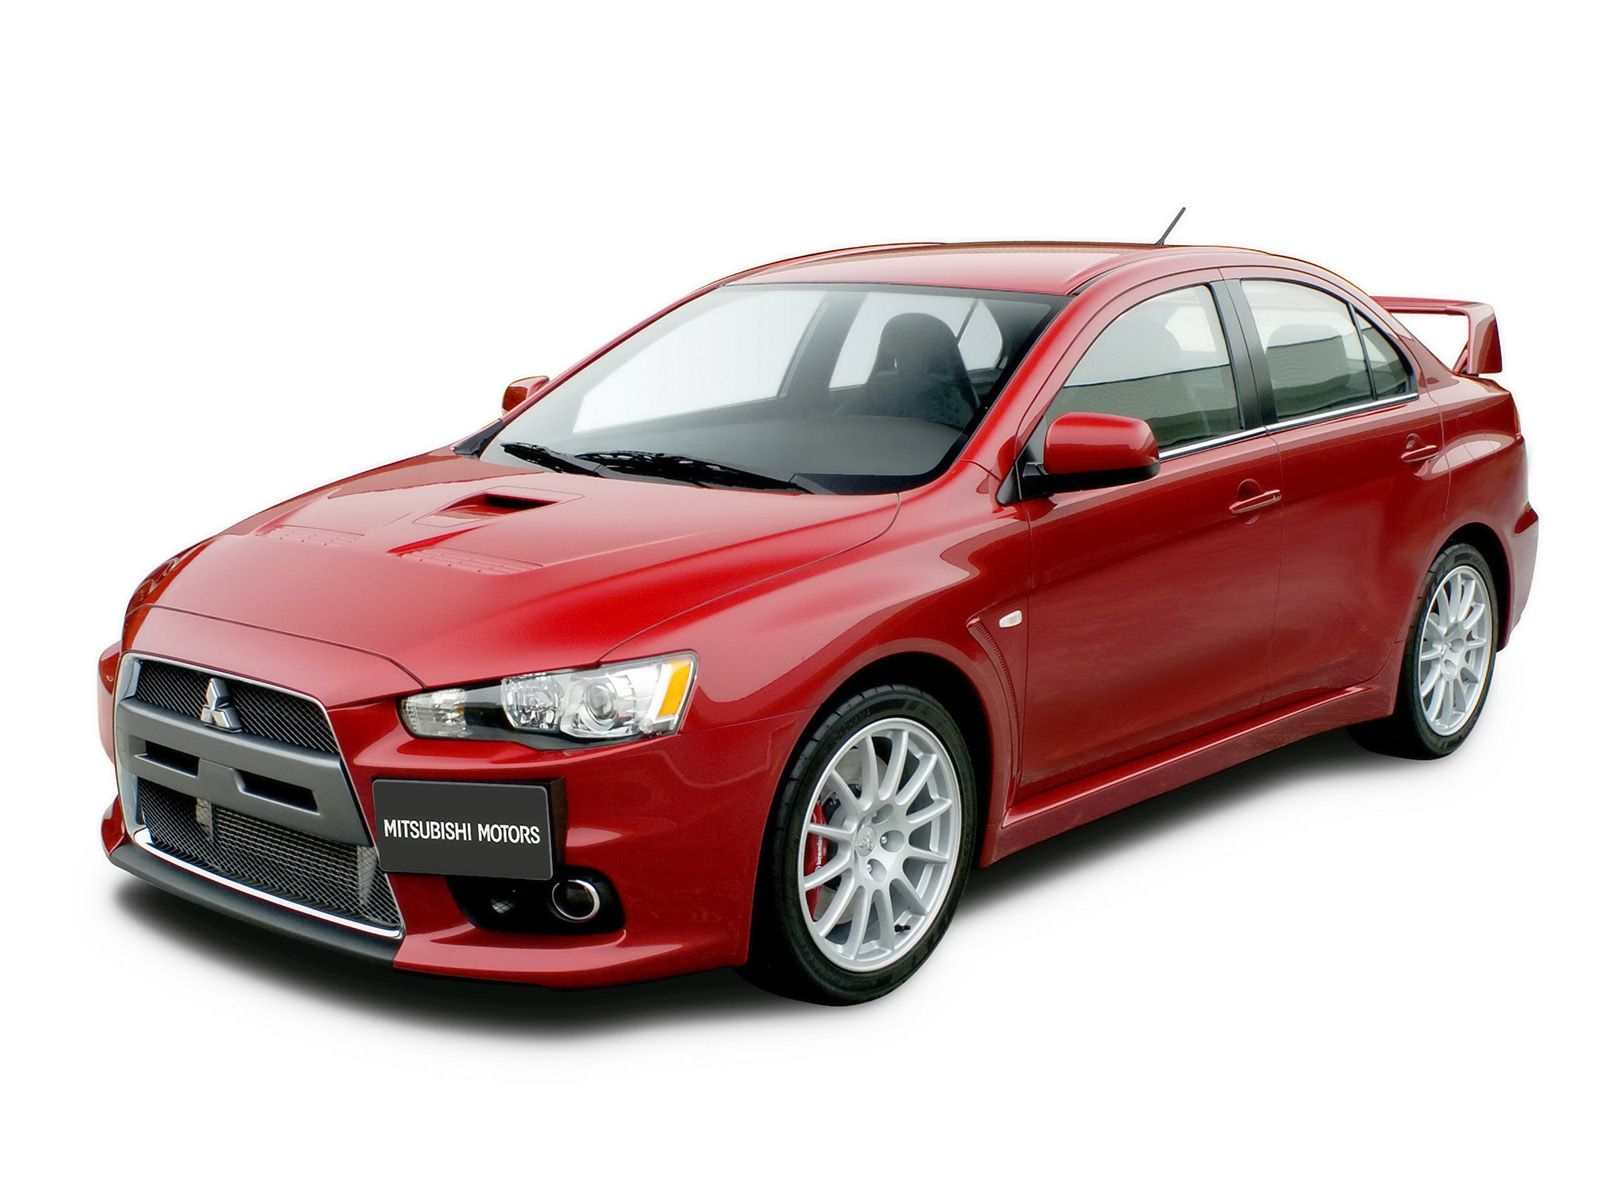 Mitsubishi has announced pricing for its 2014 lancer evolution sports sedan the evo largely carries over for the new year but does receive some interior